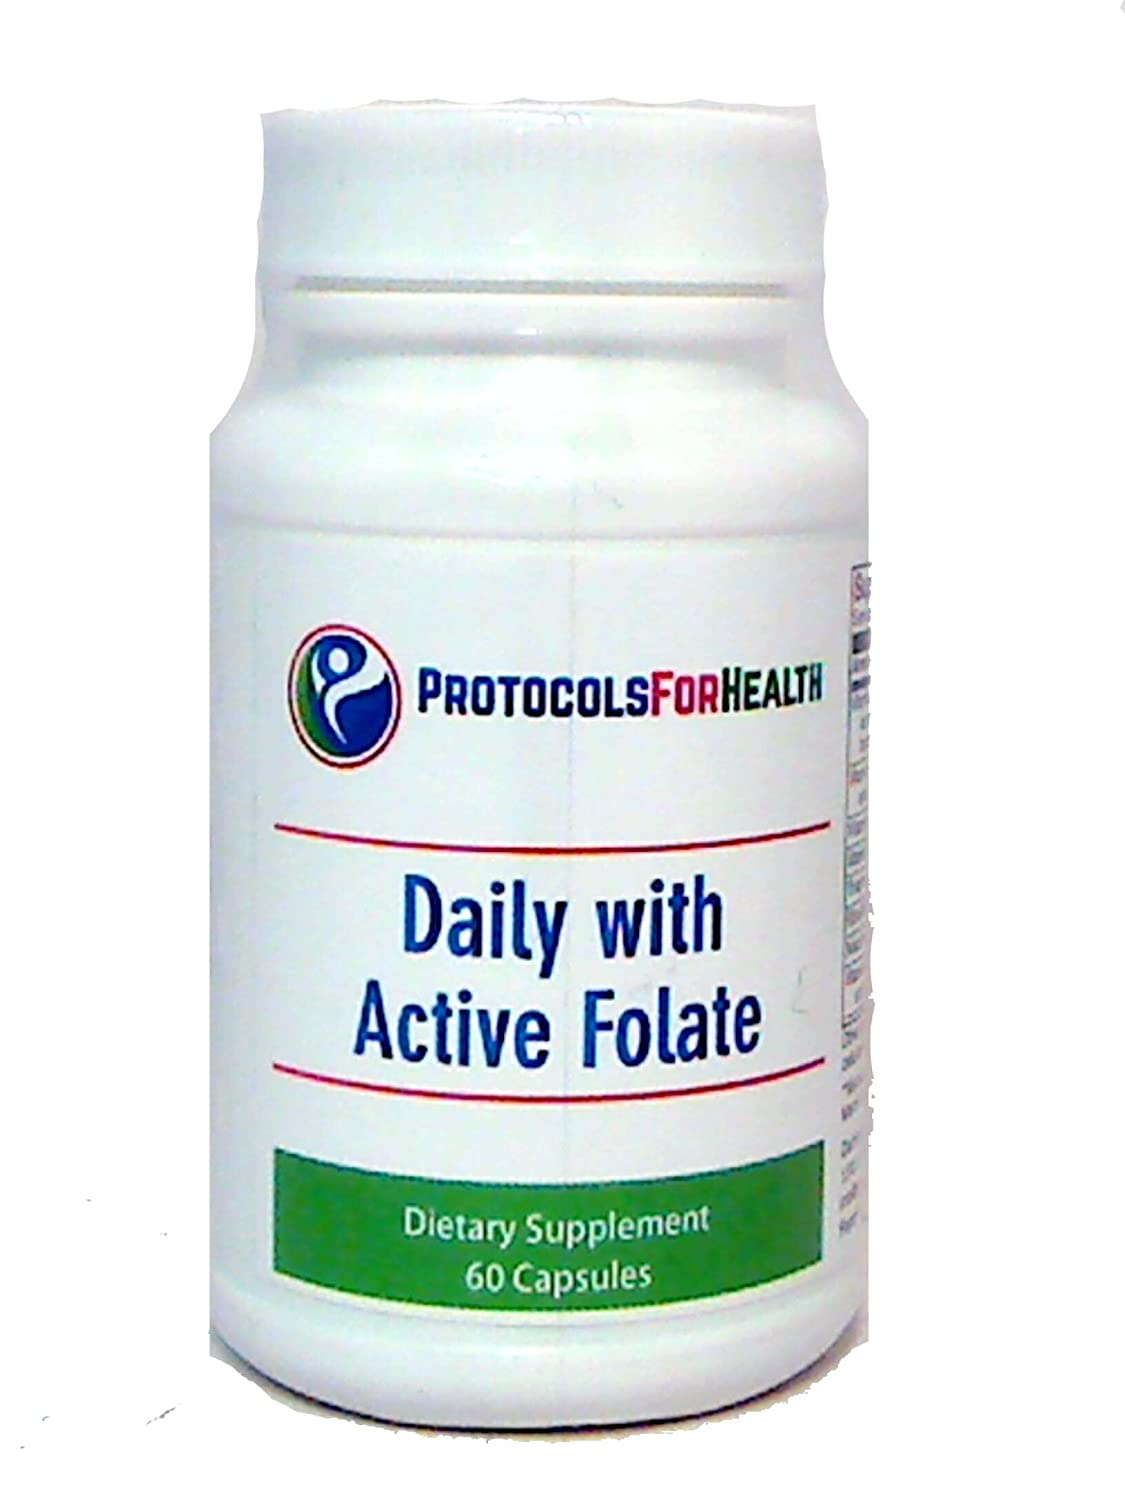 Daily with Active Folate | 60 Capsules | Comprehensive Hypoallergenic Once-Daily Vitamin Supplement with Active Folate (L-5-methyltetrahydrofolate)